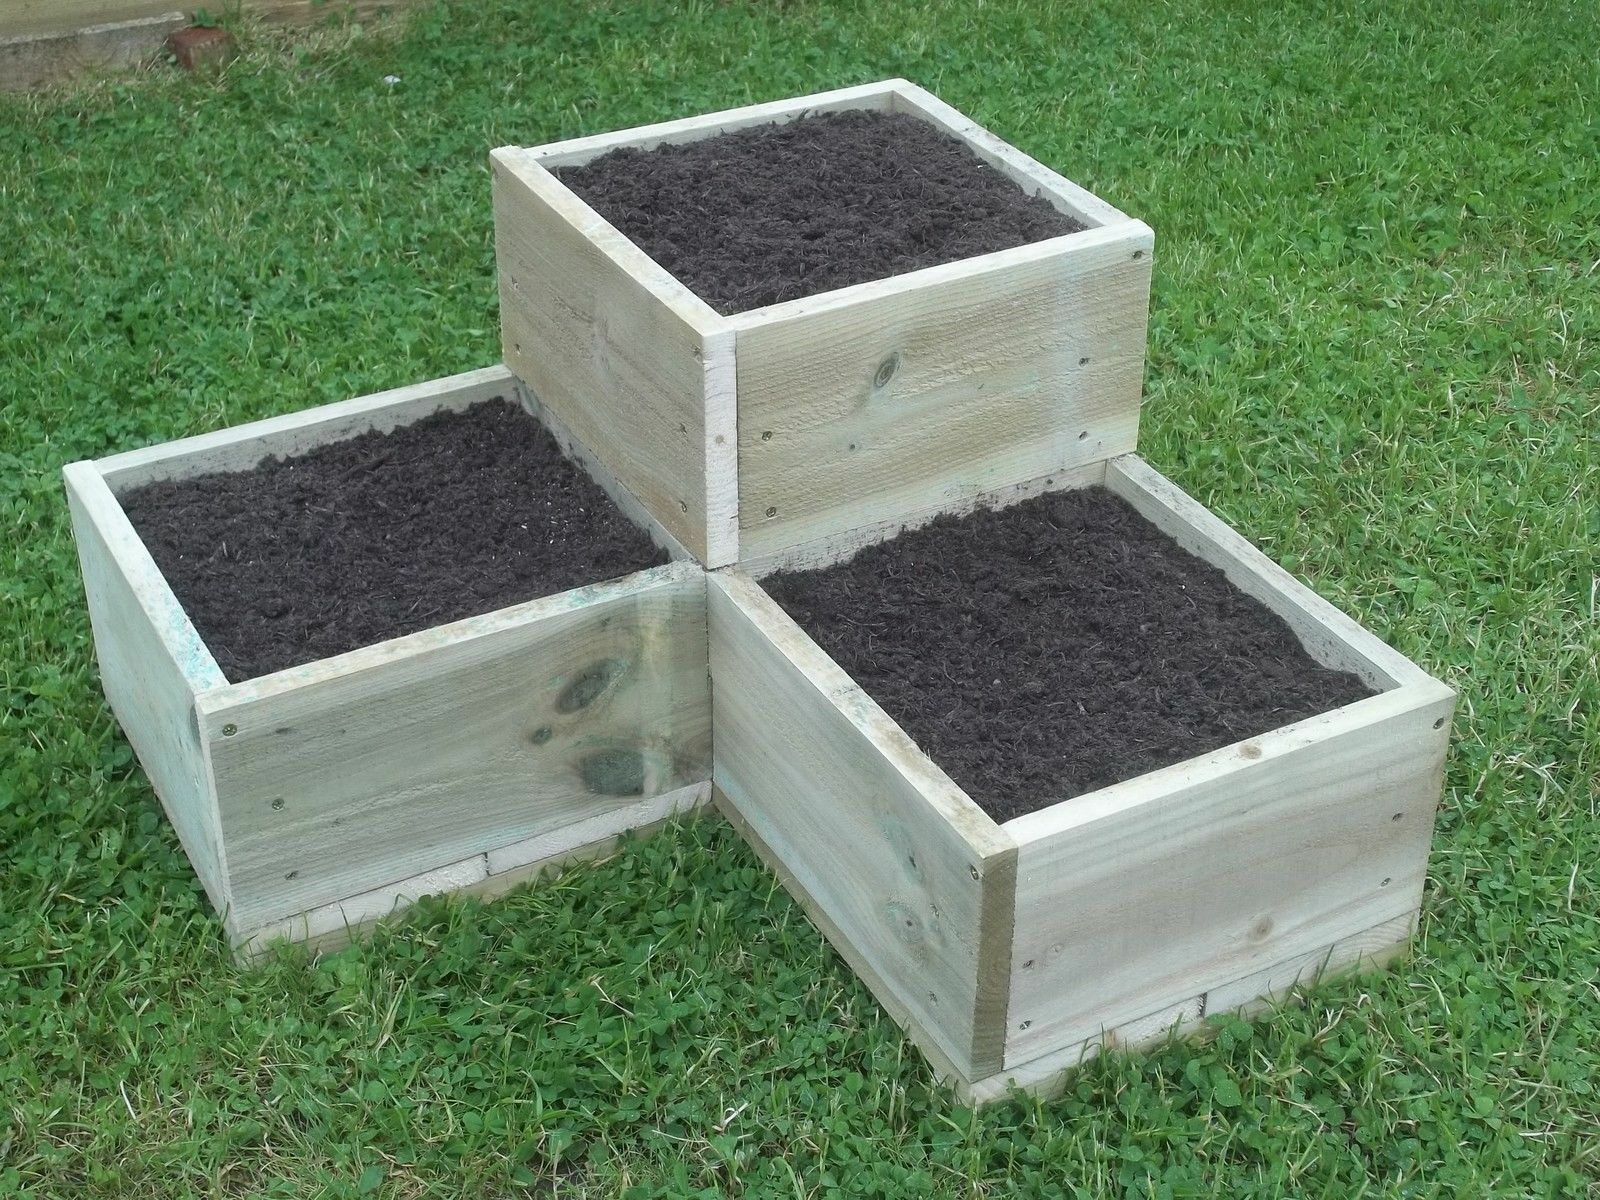 How to build a tiered garden box ebay for Home garden box design